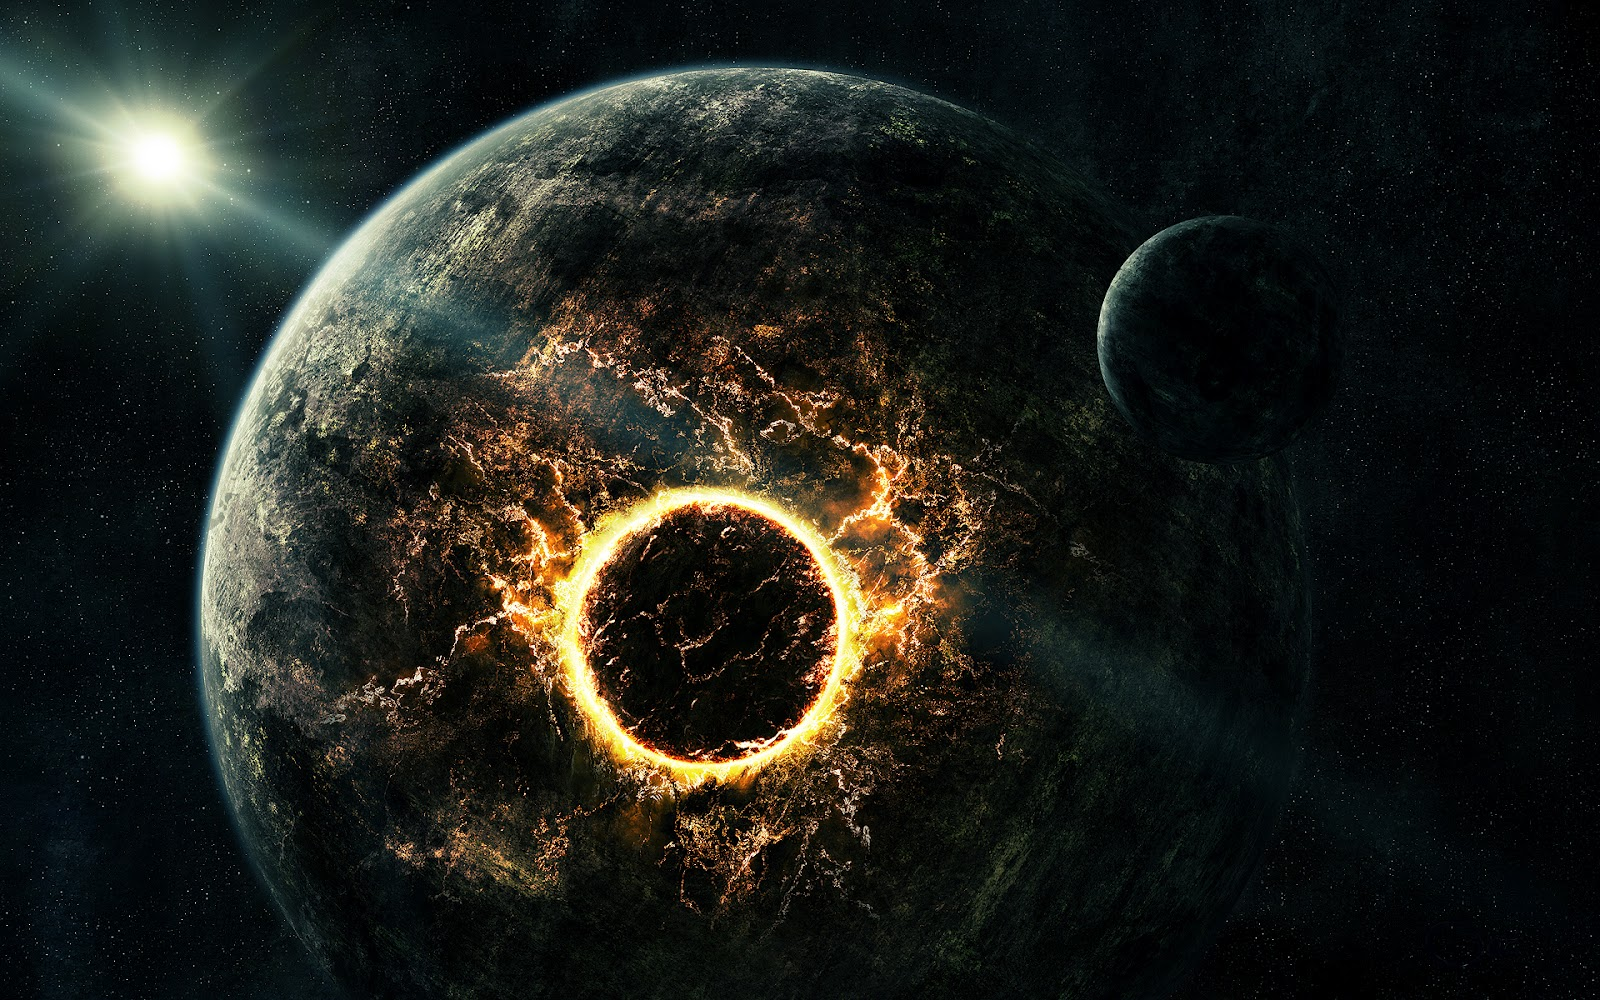 Awesome Planet Explosion HD Wallpaper The Wallpaper Database 1600x1000